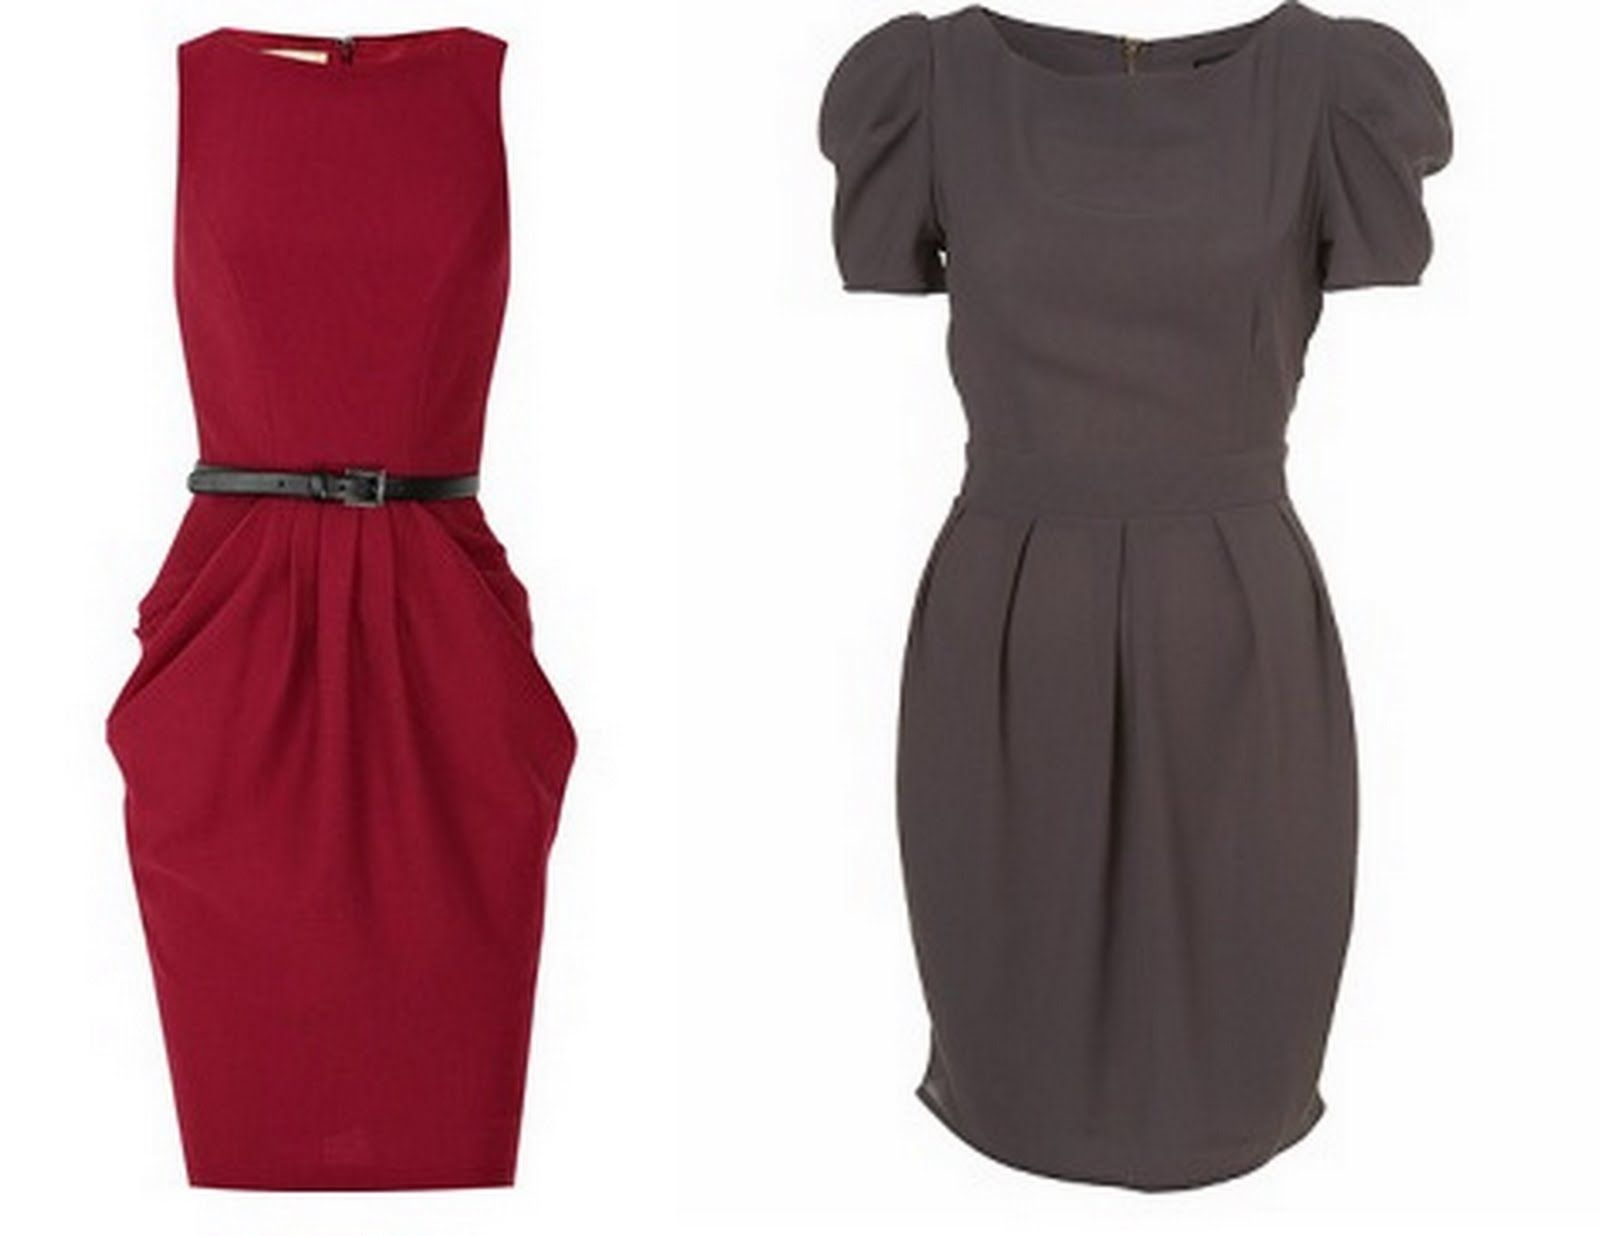 Ladies Work Outfits | Wear to Work Dresses and Women's Work ...